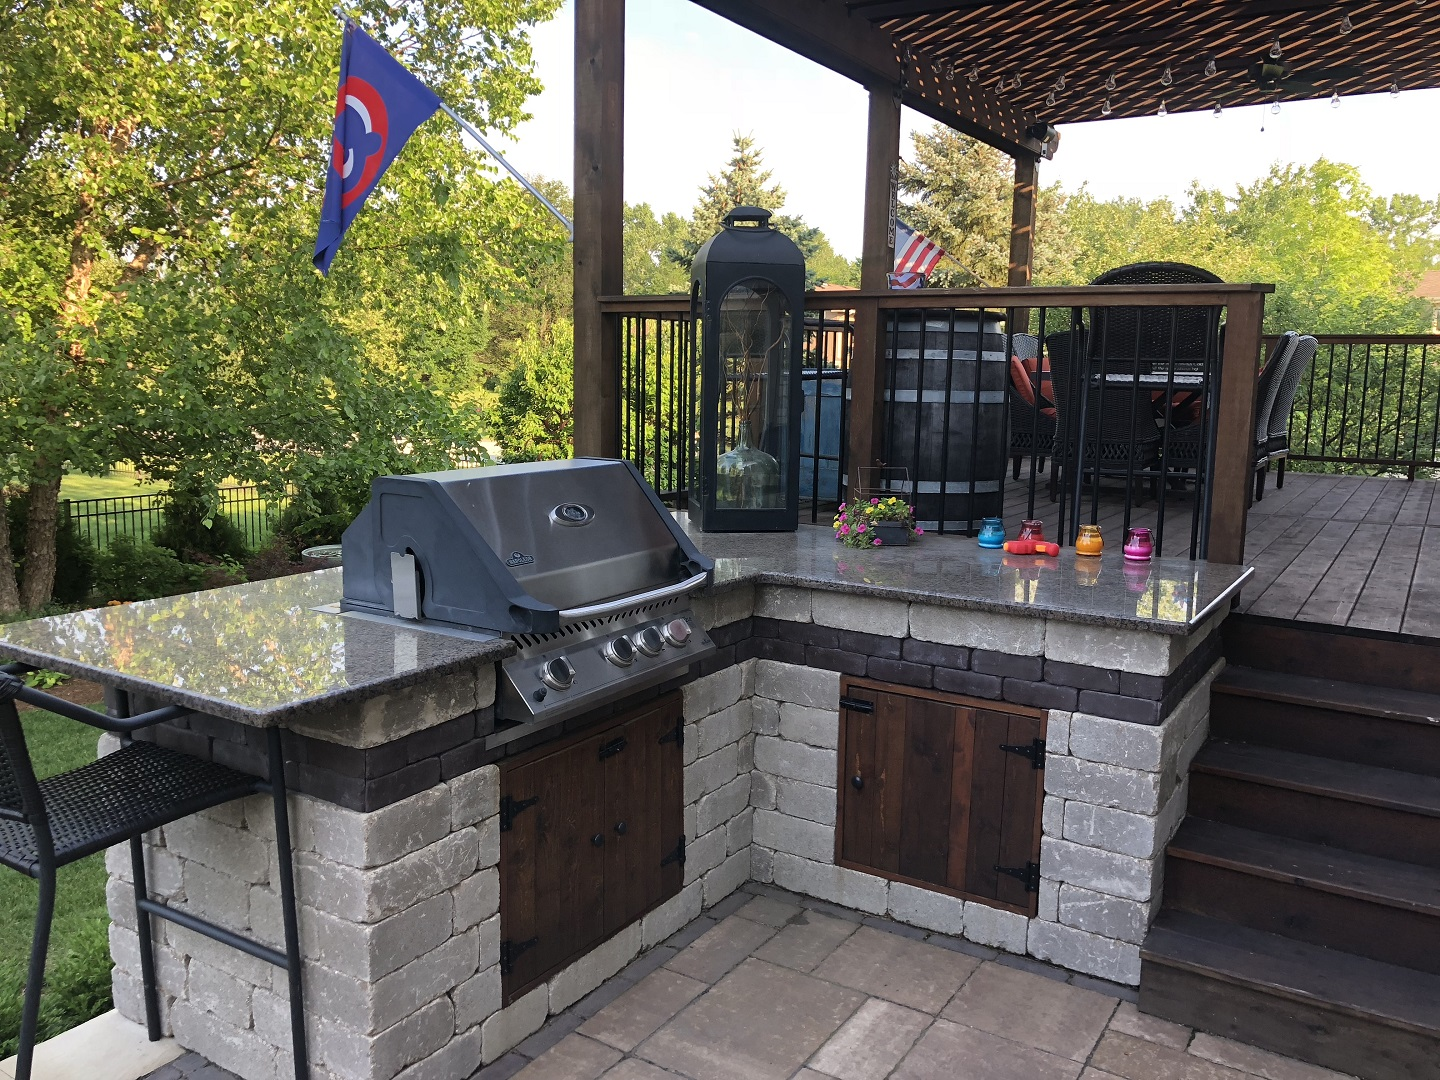 Peotone, Illinois landscaping services, including outdoor kitchen installation